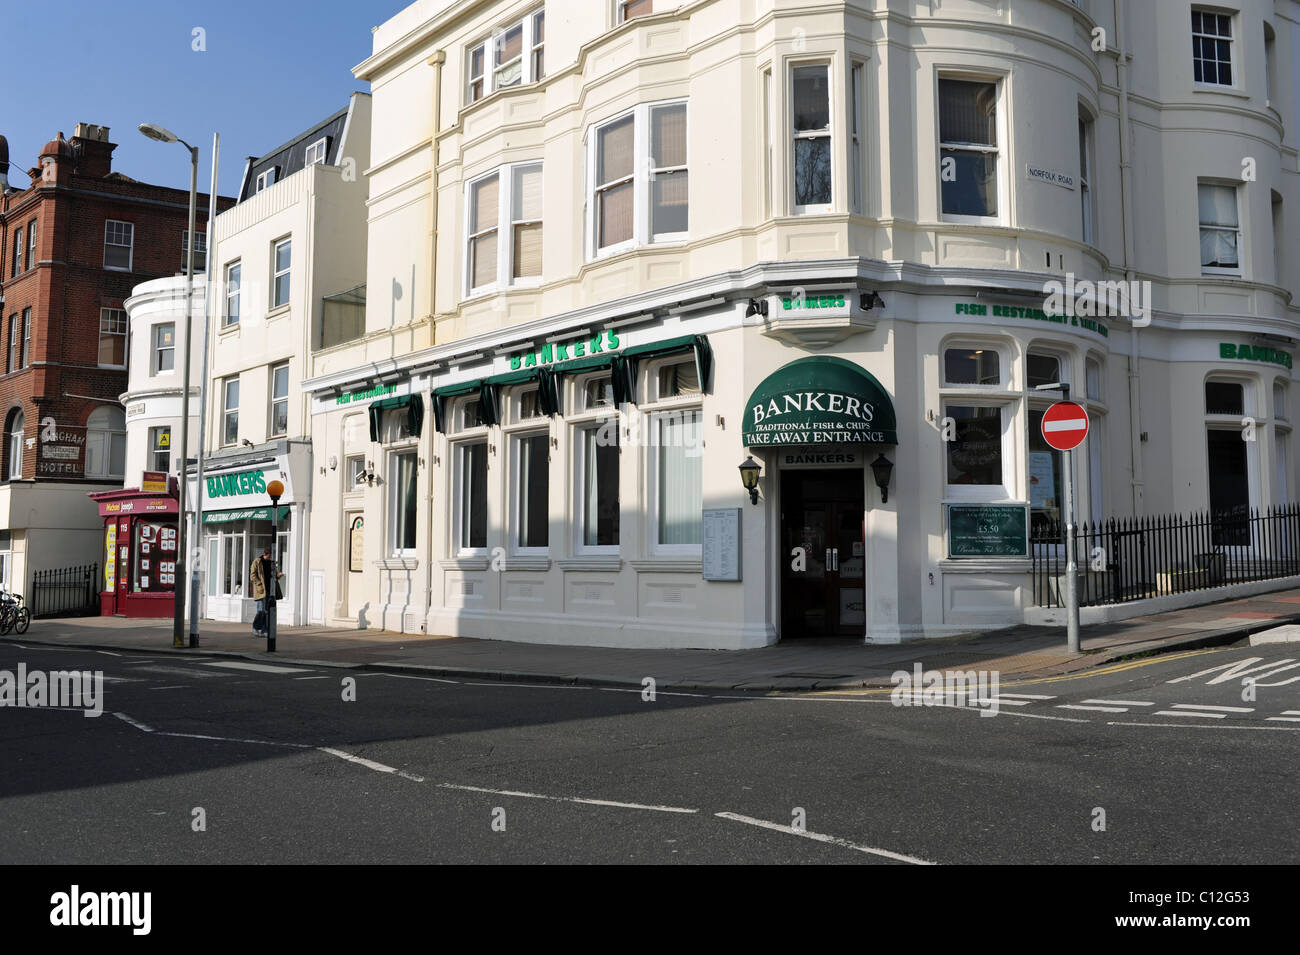 Bankers fish and chip take away restaurant in Brighton the building formerly being a bank - Stock Image